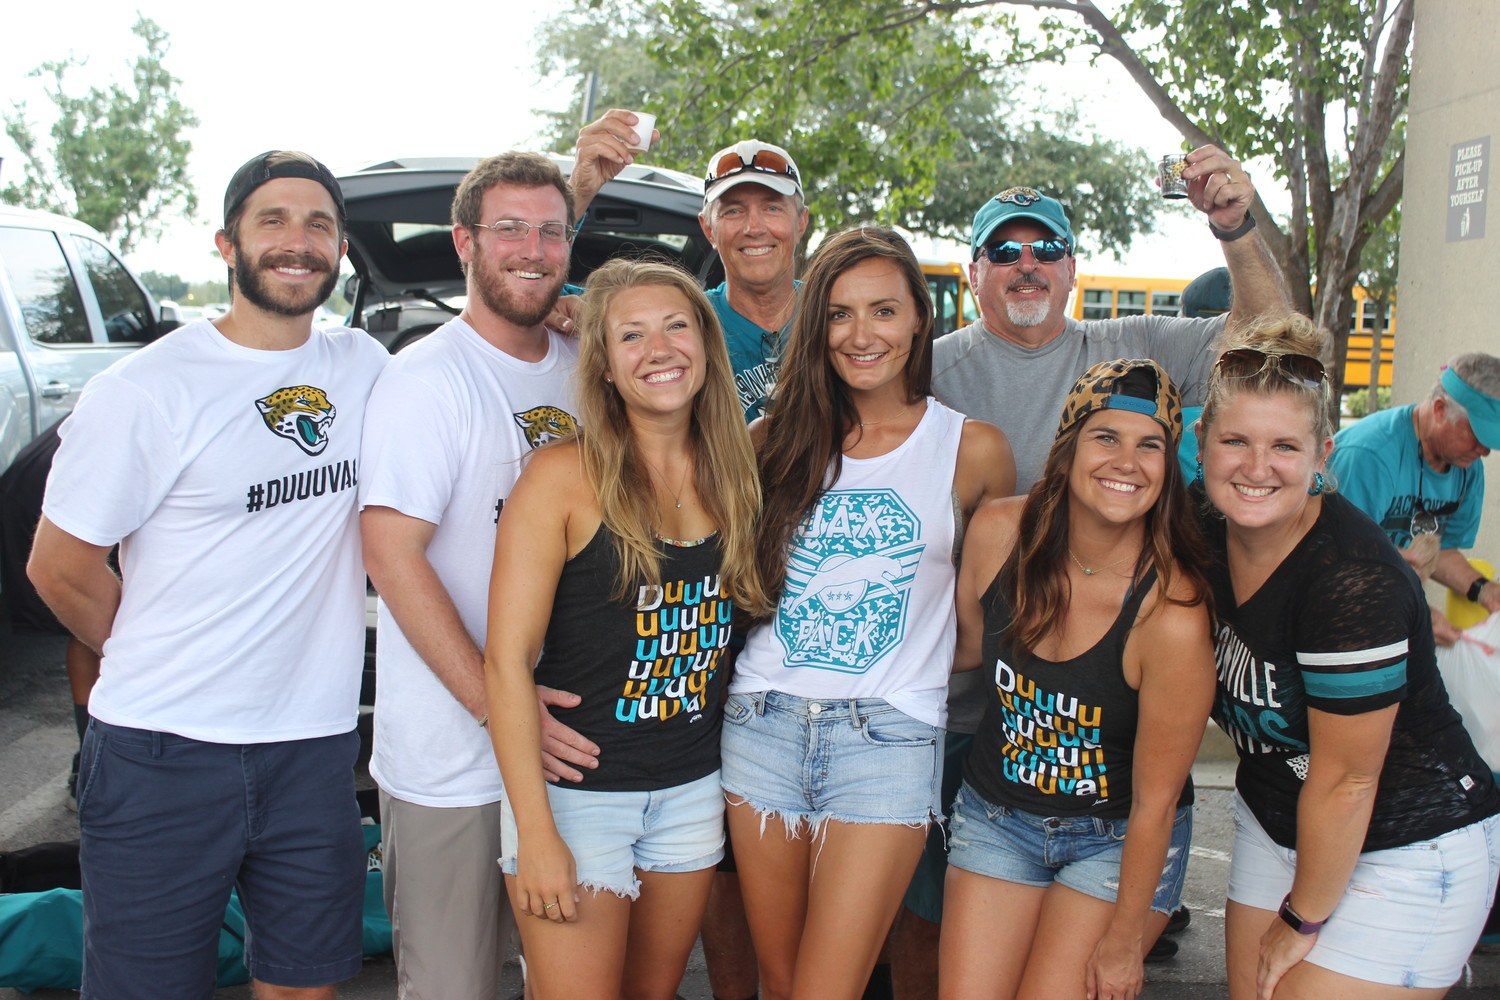 Jaguars fans from up and down the First Coast enjoyed the opportunity to tailgate before the team faced the Atlanta Falcons Aug. 25 in preseason week three.